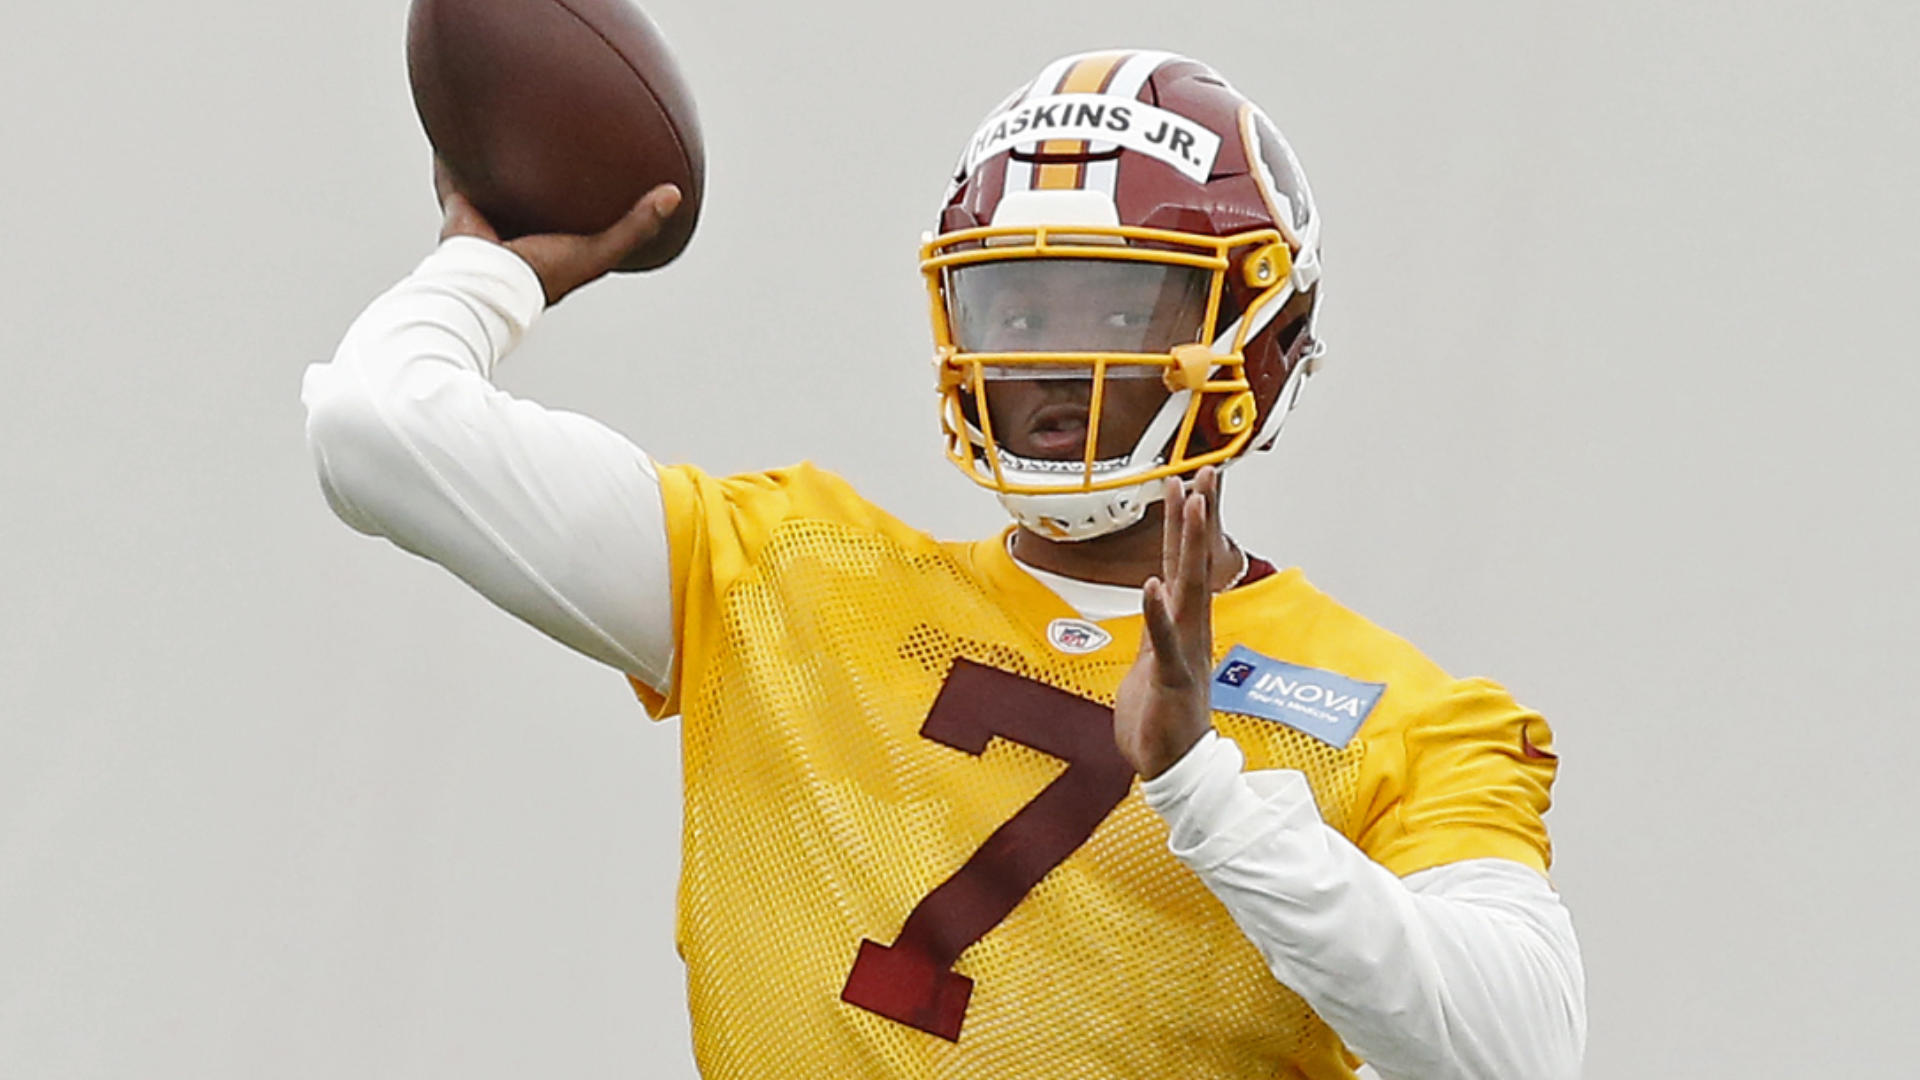 Alex Smith attends Redskins OTAs six months after gruesome leg injury, which could bode well for Dwayne Haskins